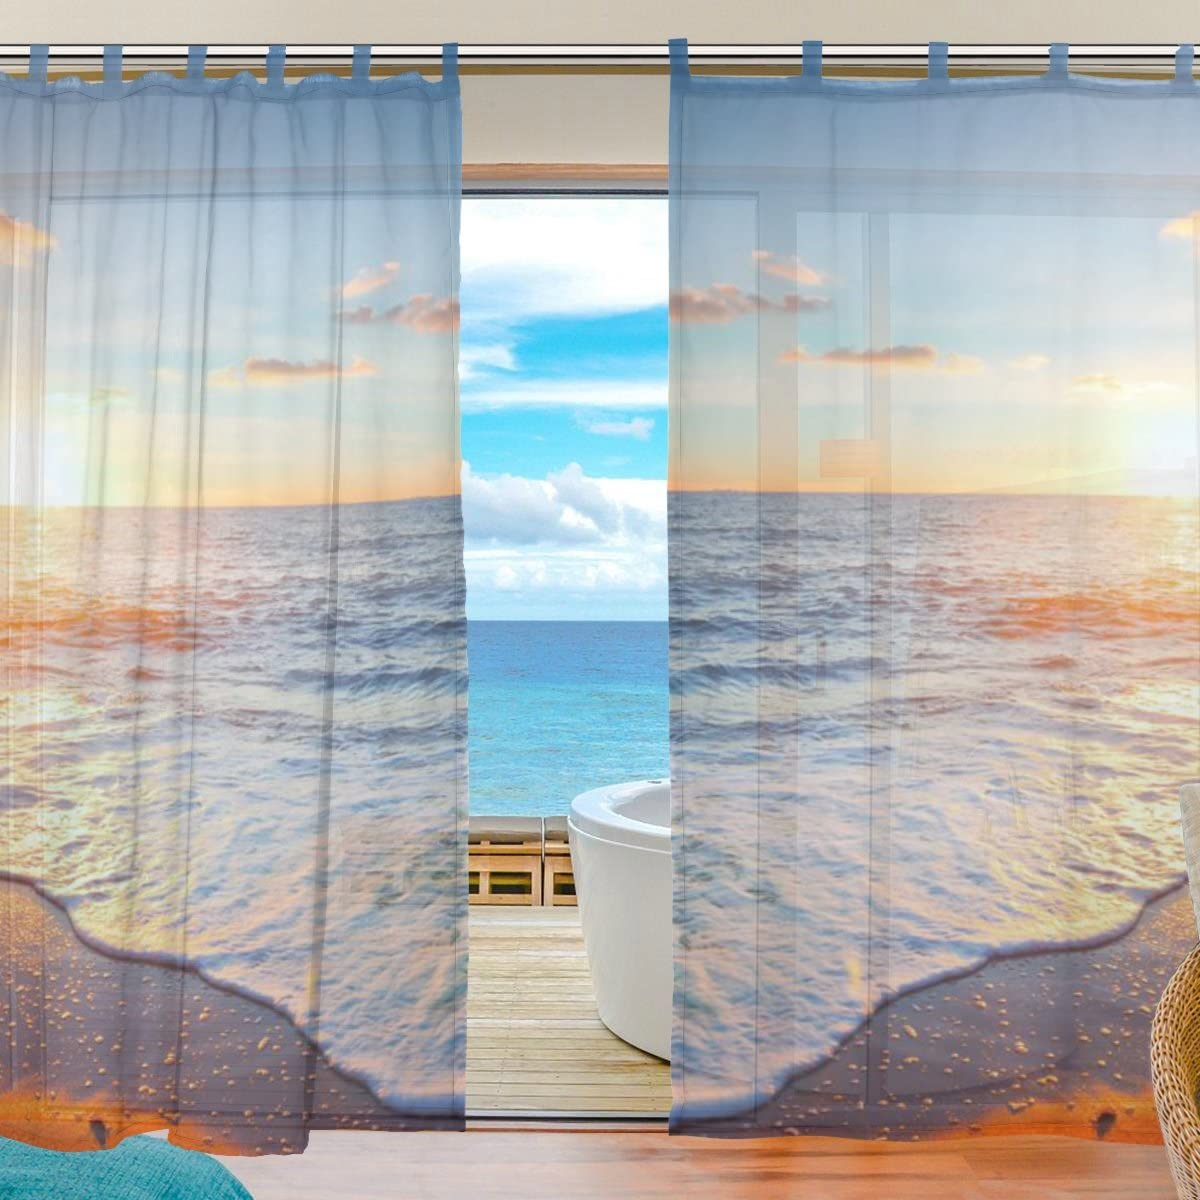 INGBAGS 2 Pieces Bedroom Decor Living Room Decorations Sunset Beach Coastal Pattern Print Tulle Polyester Door Window Gauze Sheer Curtain Drape Two Panels Set 55×78 inch E41